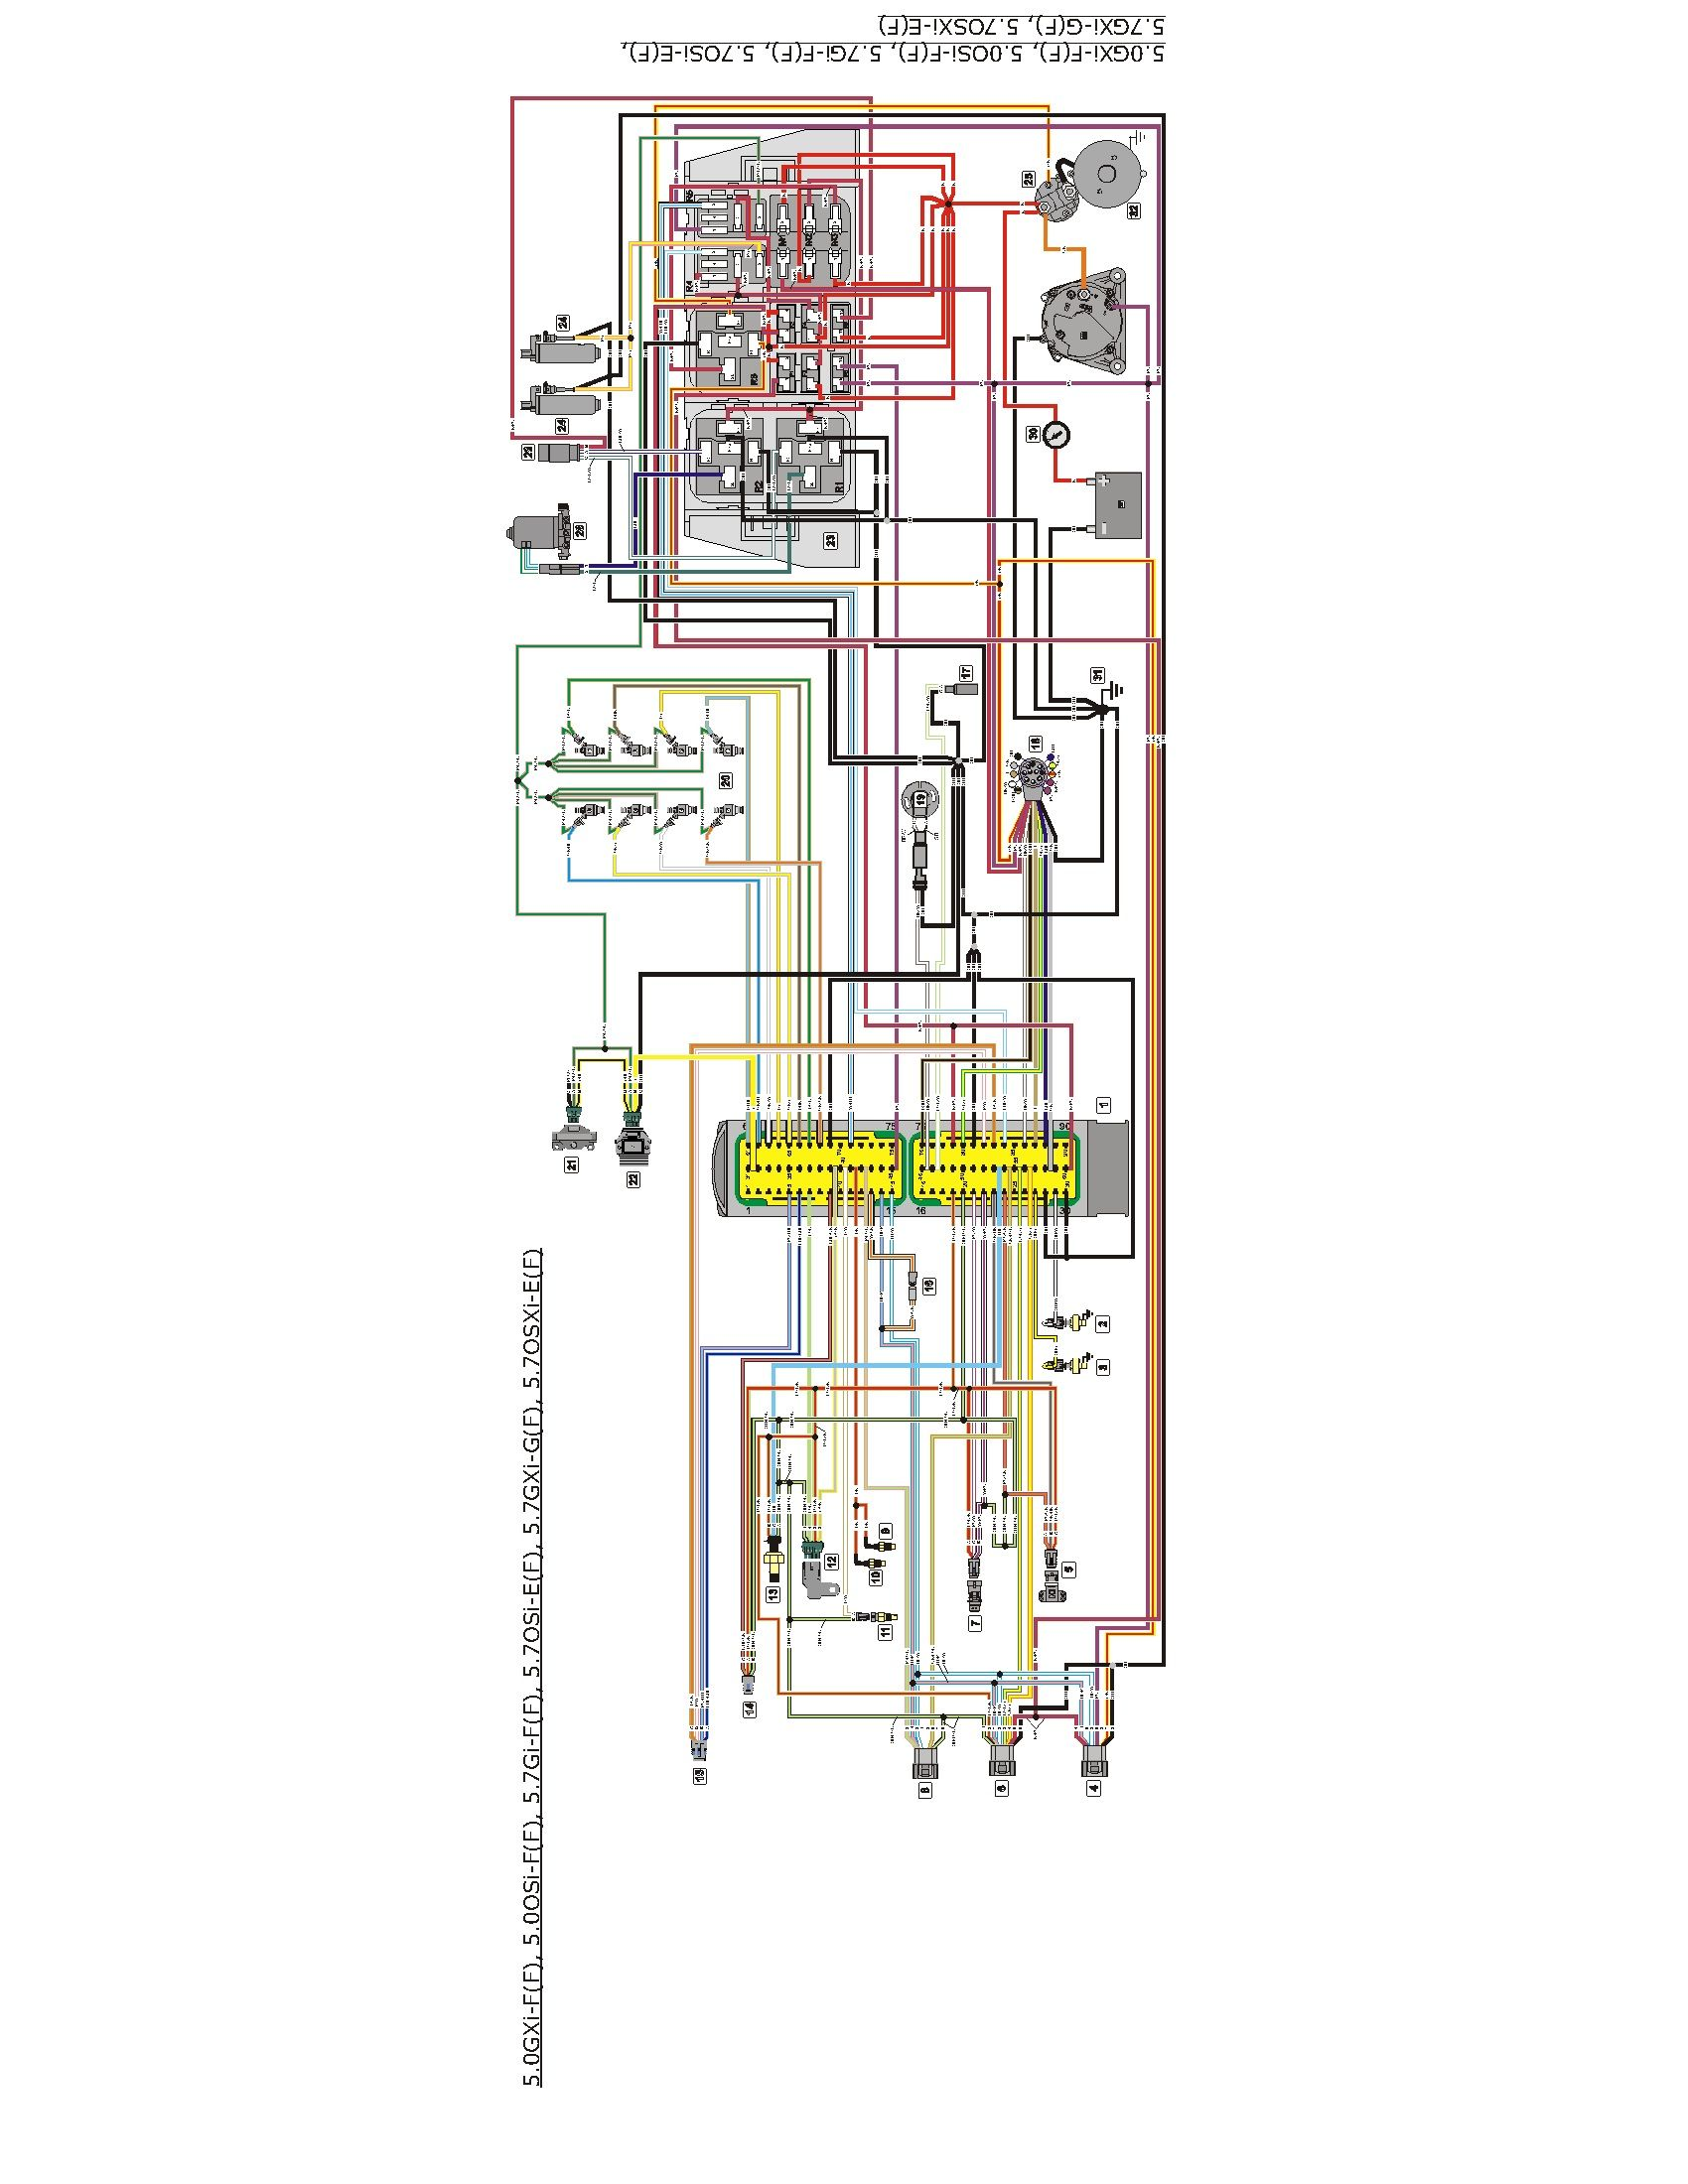 38e0106861e0fe47e508530985b32839 volvo penta 5 7 engine wiring diagram yate pinterest volvo volvo penta wiring harness diagram at edmiracle.co